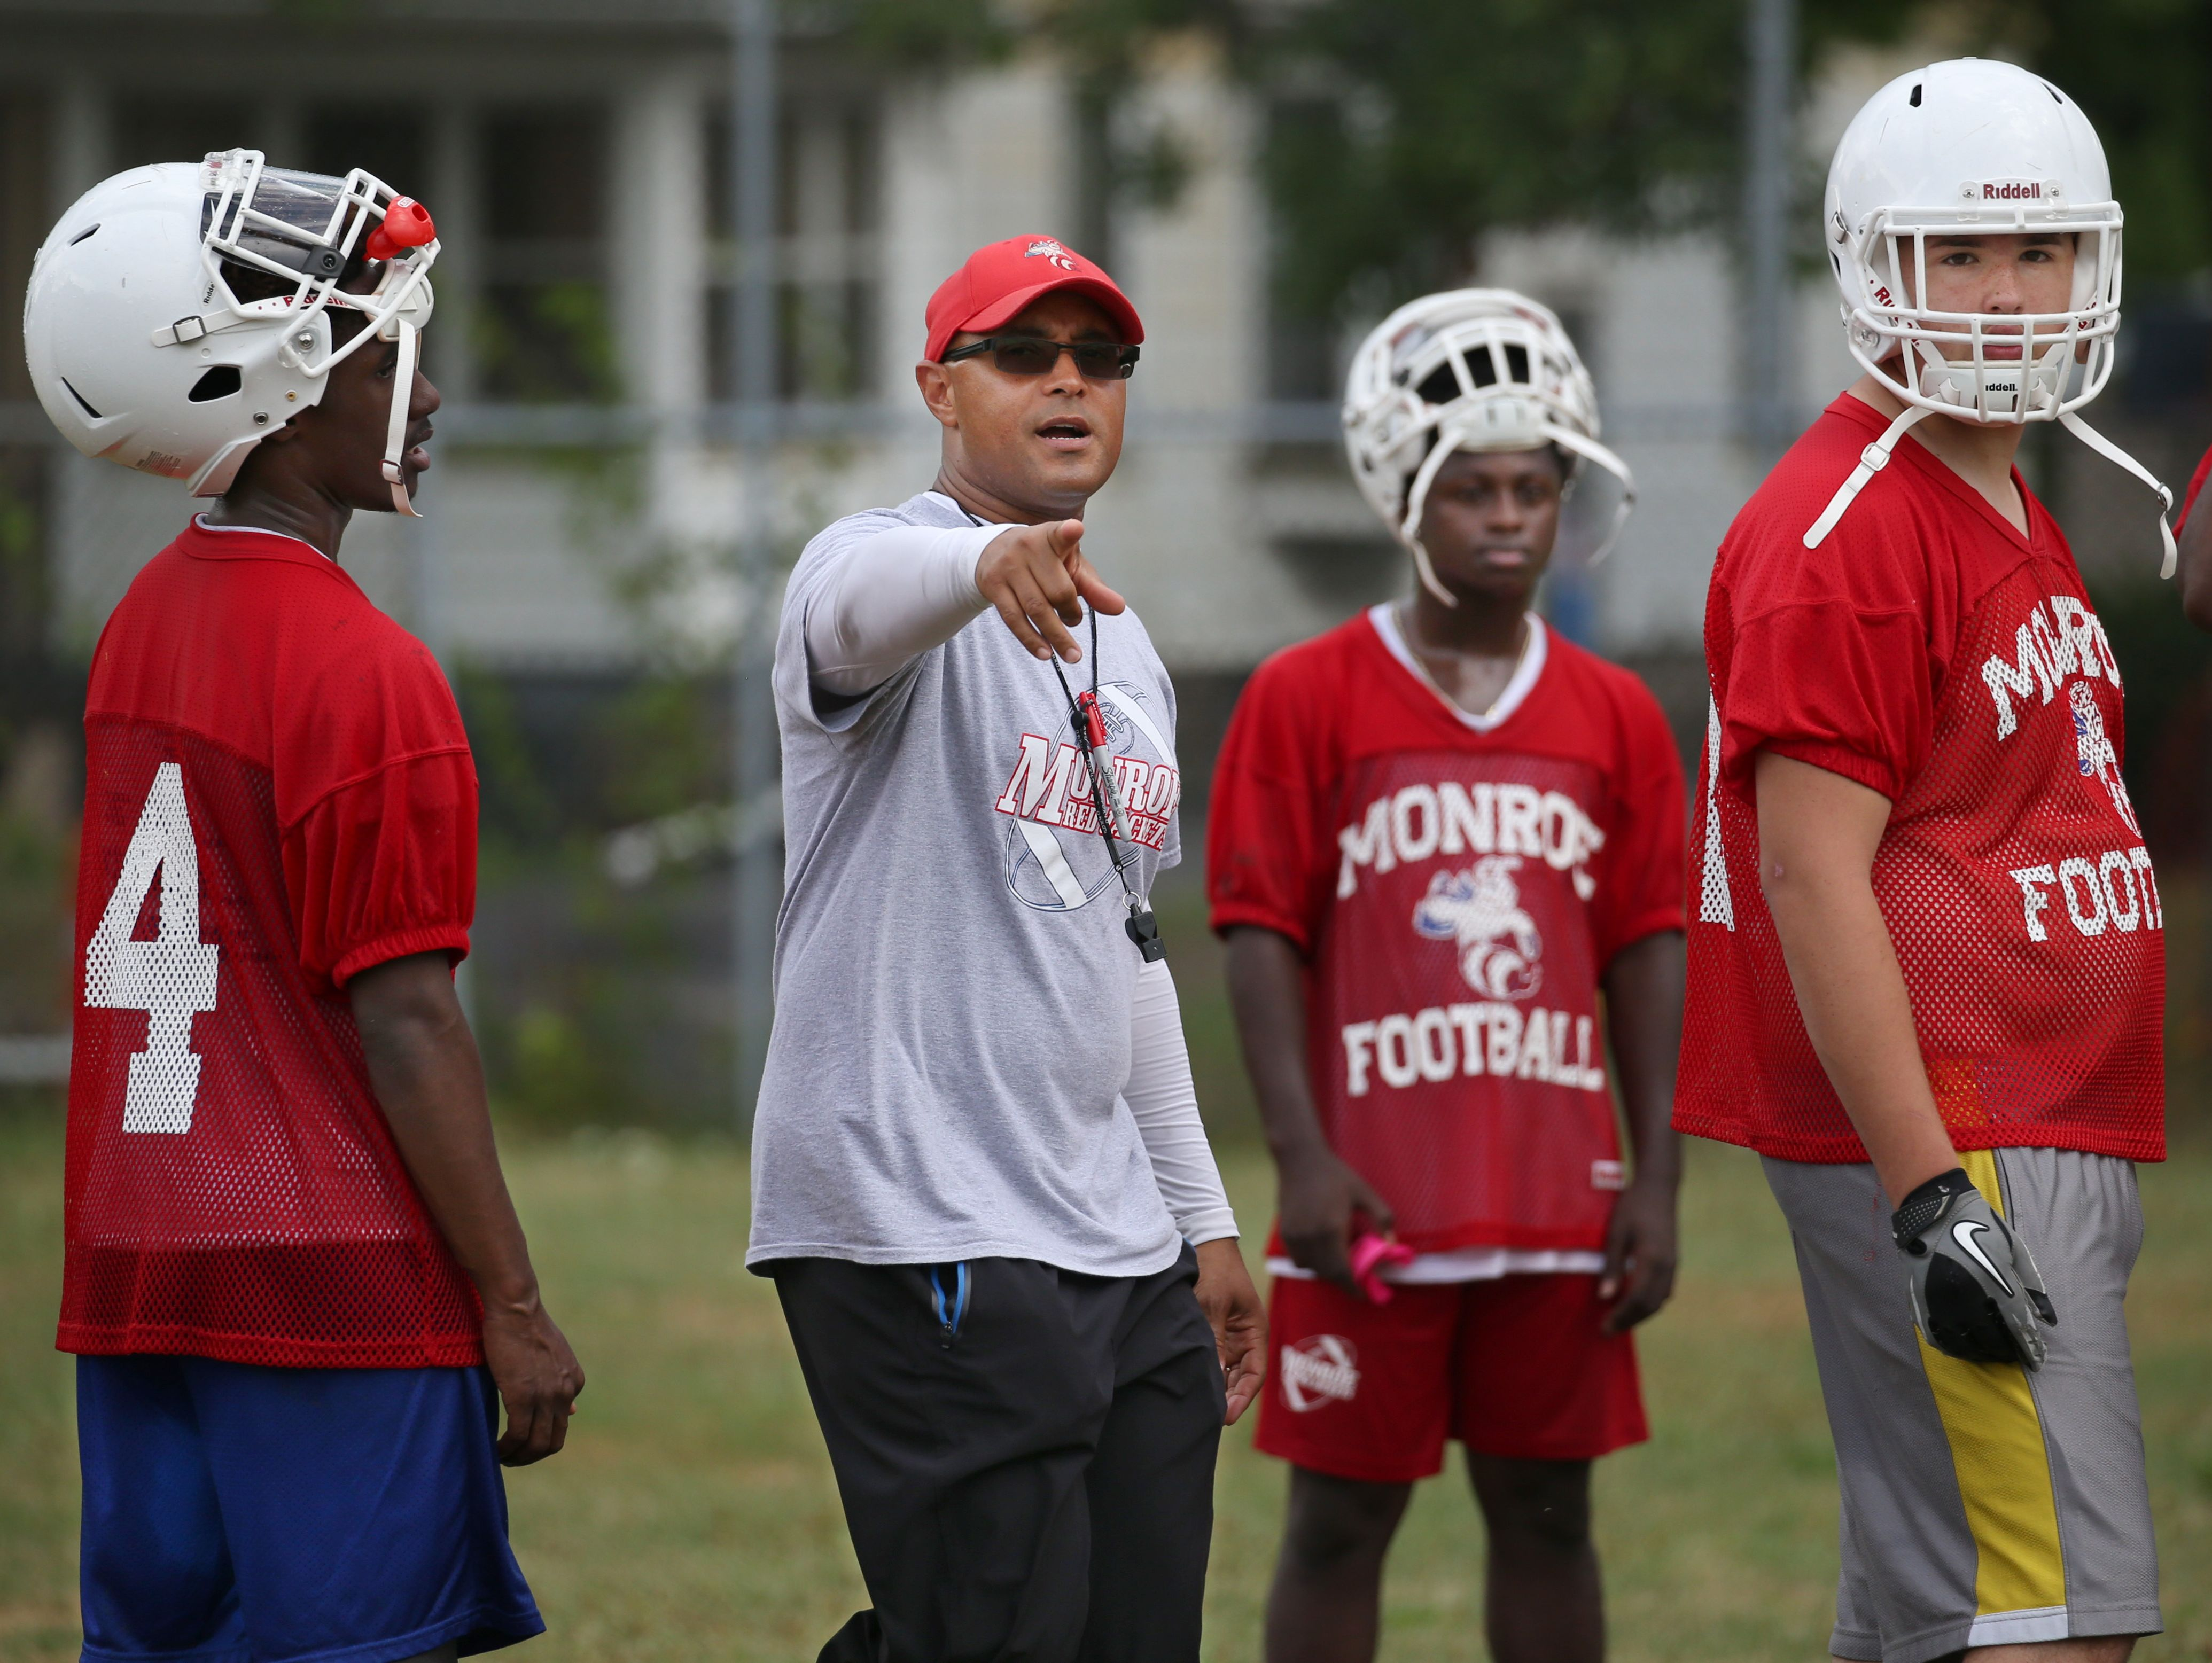 Monroe Head Coach Jason Muhammad leads his squad through punt formations during varsity football practice at All City High on Ridgeway Avenue in Rochester Tuesday, Aug. 16, 2016.